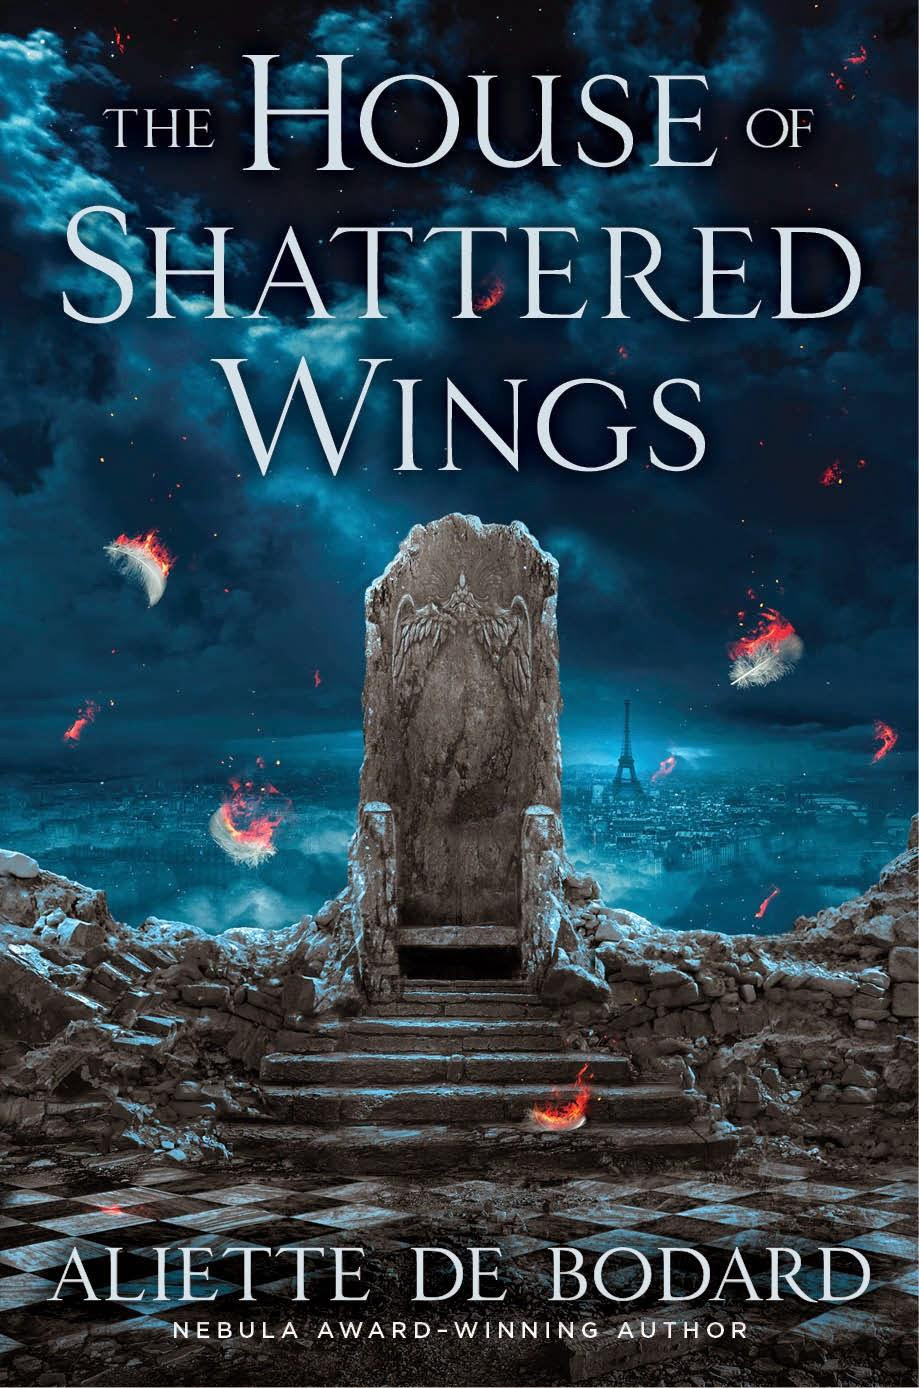 The House-of-Shattered-Wings-small